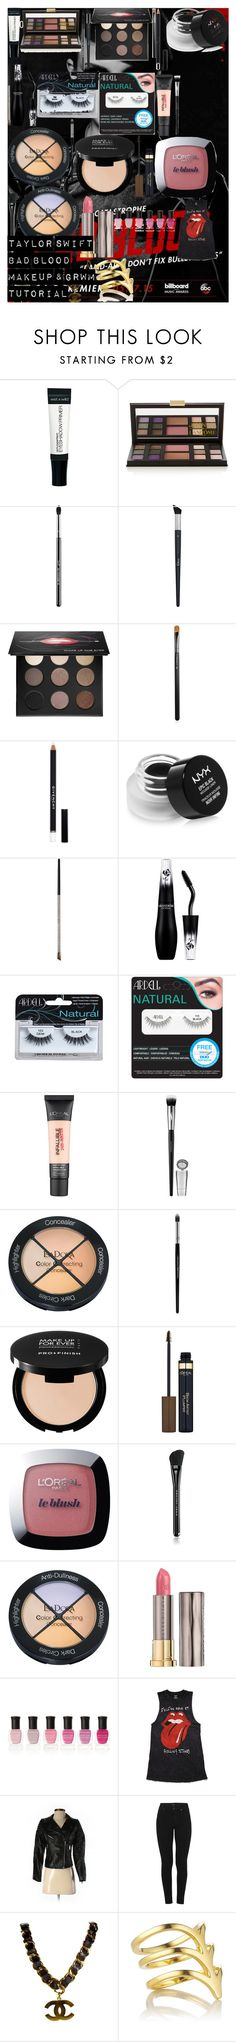 """""""TAYLOR SWIFT BAD BLOOD MAKEUP & GRWM TUTORIAL"""" by oroartye-1 on Polyvore featuring beauty, Lancôme, Sigma, Christian Dior, MAKE UP FOR EVER, MAC Cosmetics, Givenchy, NYX, Urban Decay and Ardell"""